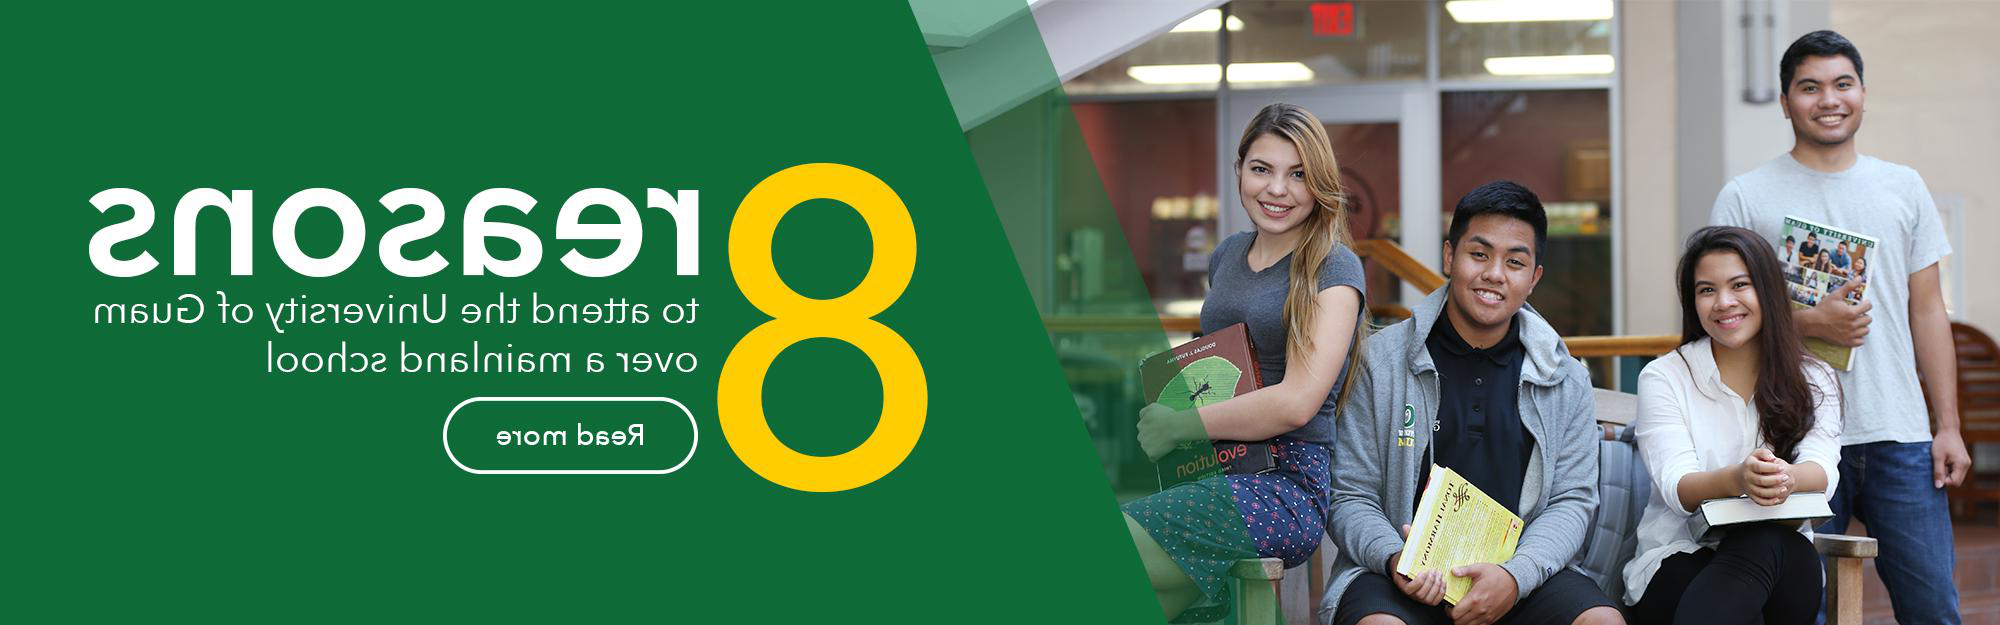 8 reasons to attend UOG over a mainland school